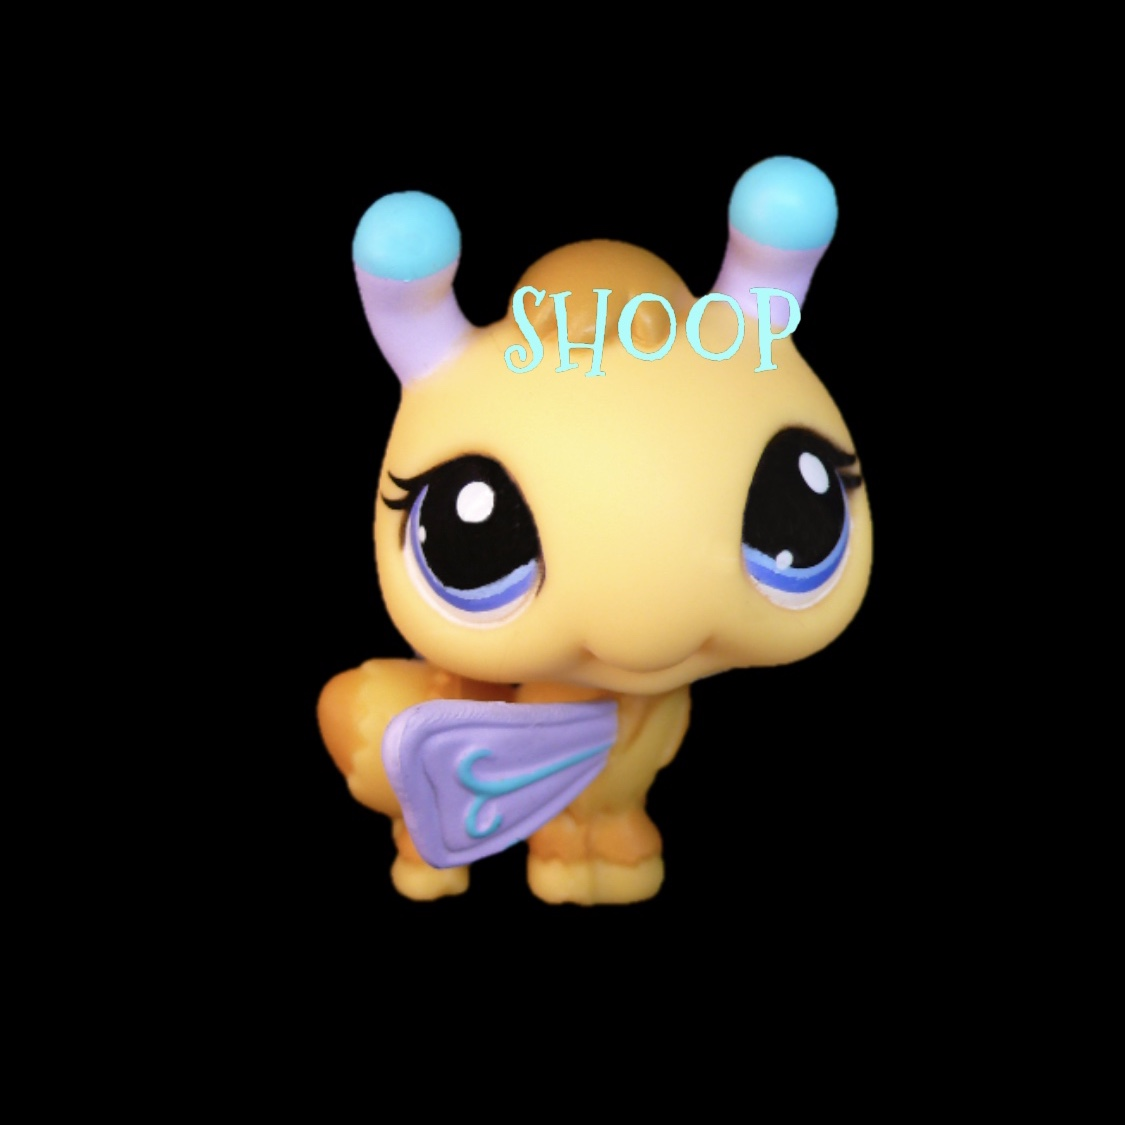 LPS 1408